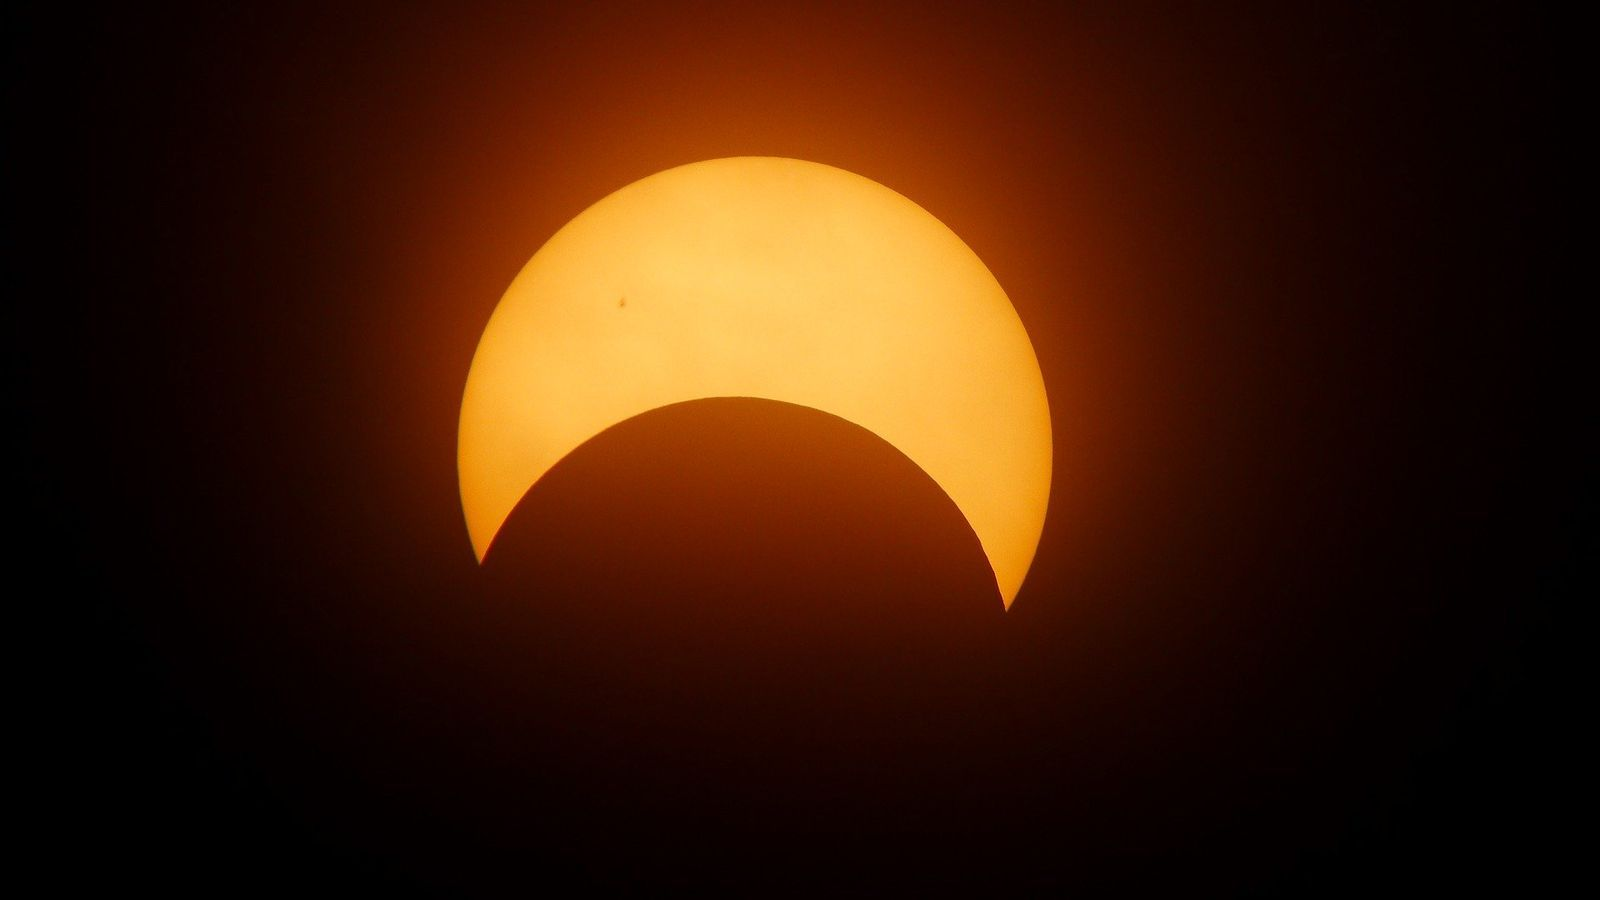 eclipse-1871740_1920.jpg